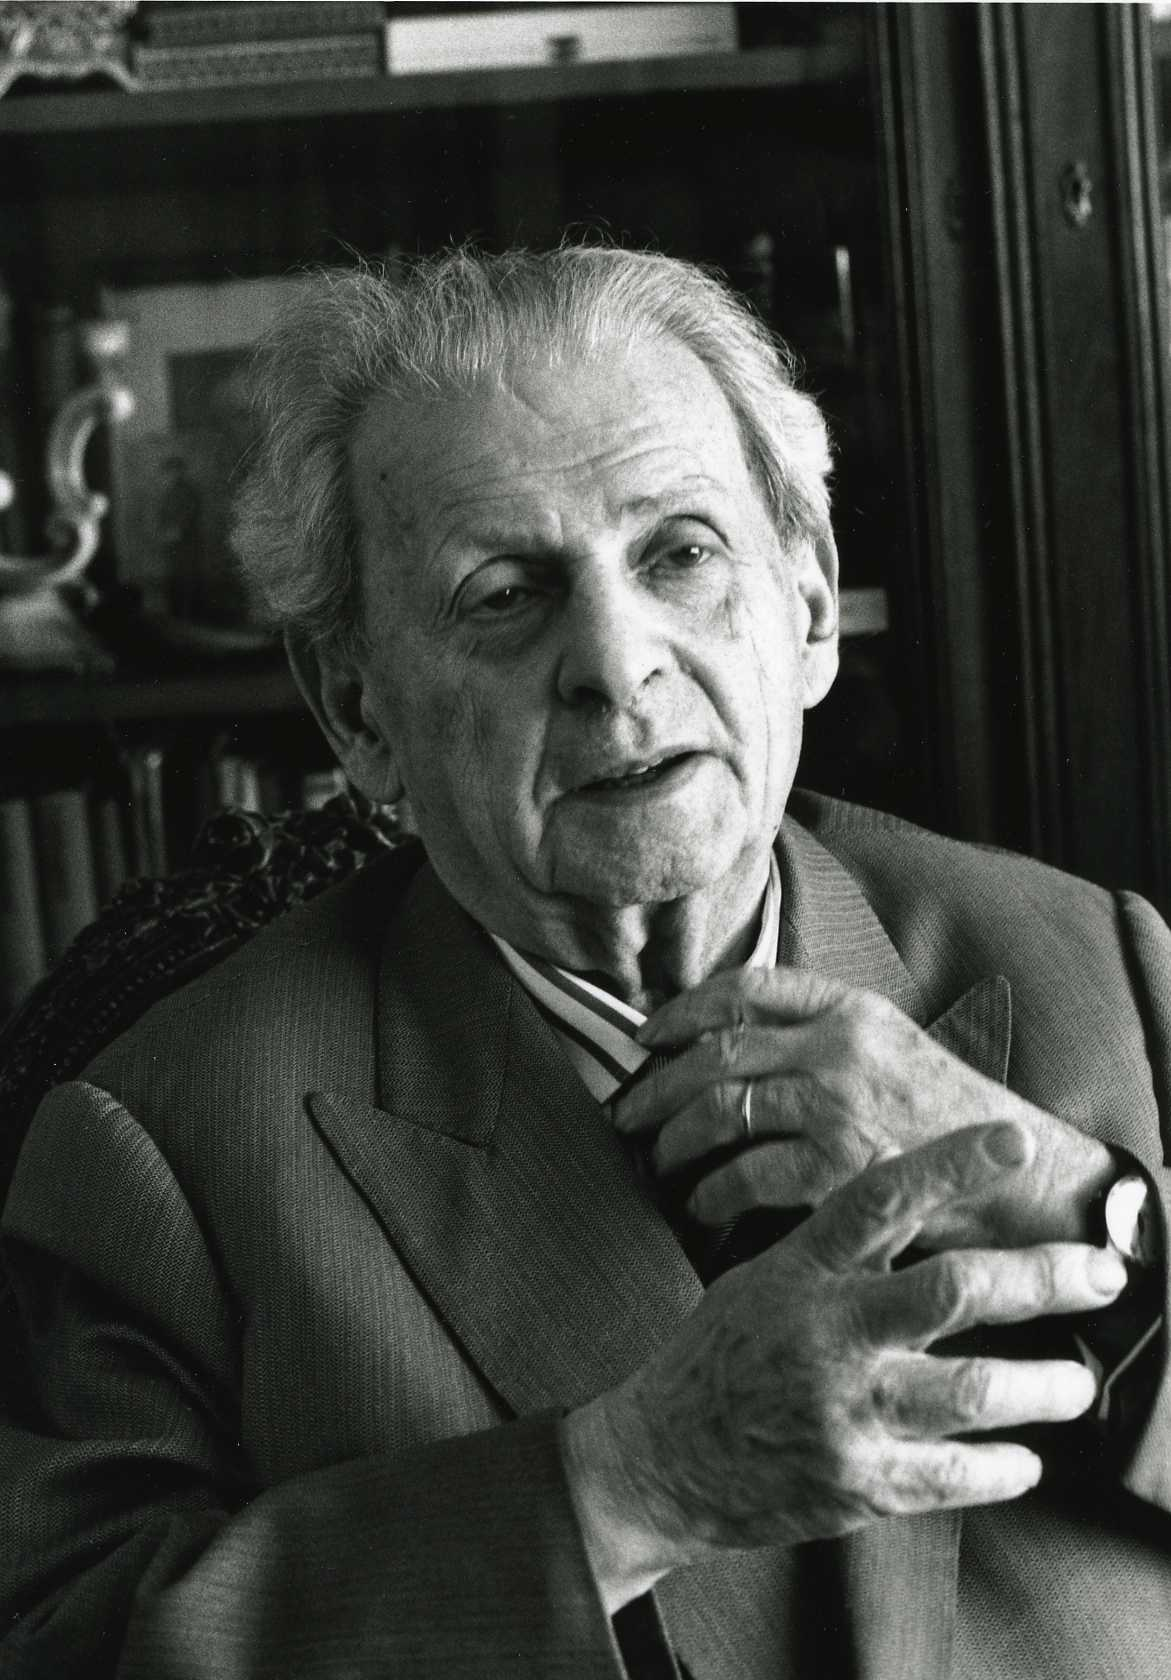 https://upload.wikimedia.org/wikipedia/commons/7/71/Emmanuel_Levinas.jpg